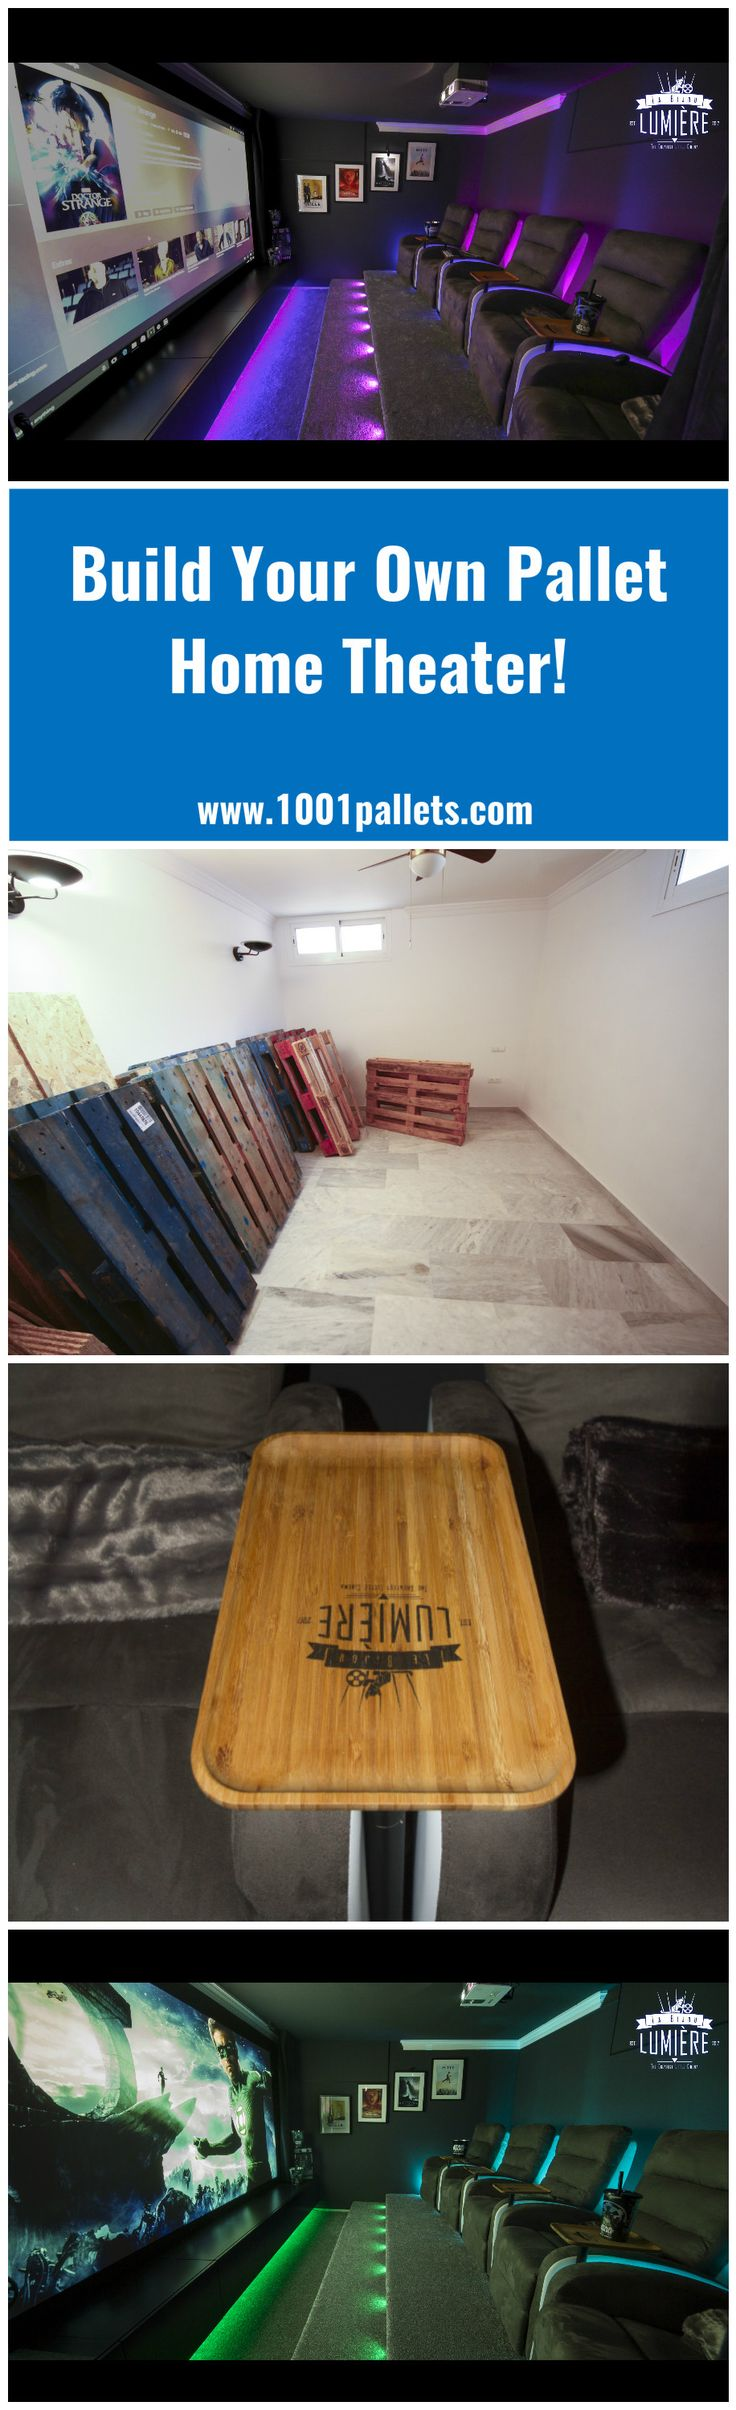 Turn those unused areas of your home into an amazing Pallet Home Theater! We knew we wanted a home cinema room and in the new house there was one handy room